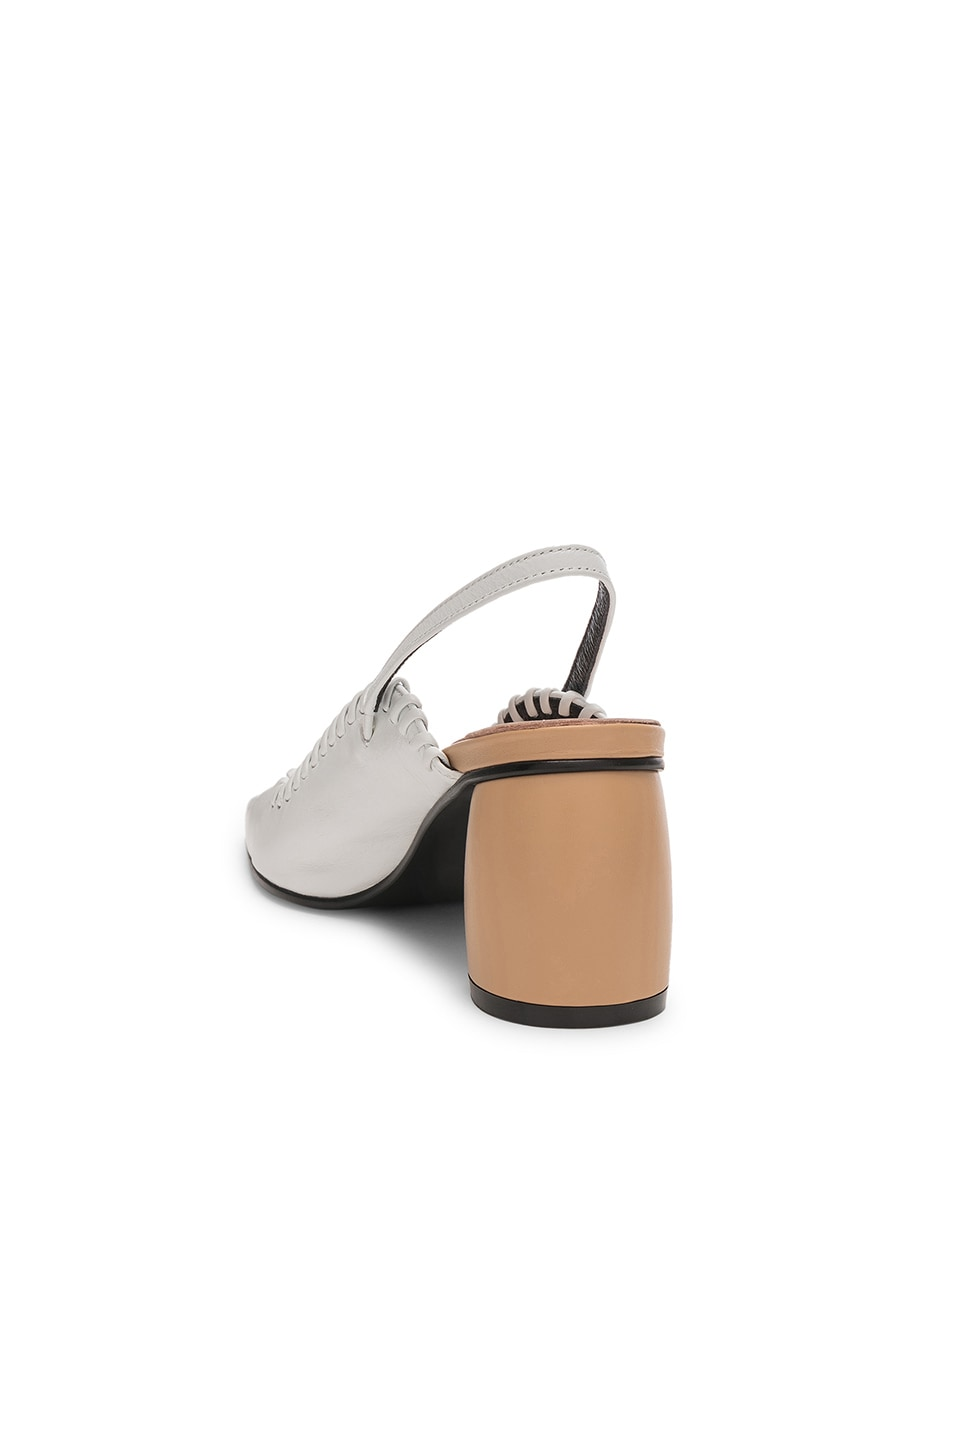 Image 3 of Reike Nen Curved Middle Slingback in White & Beige